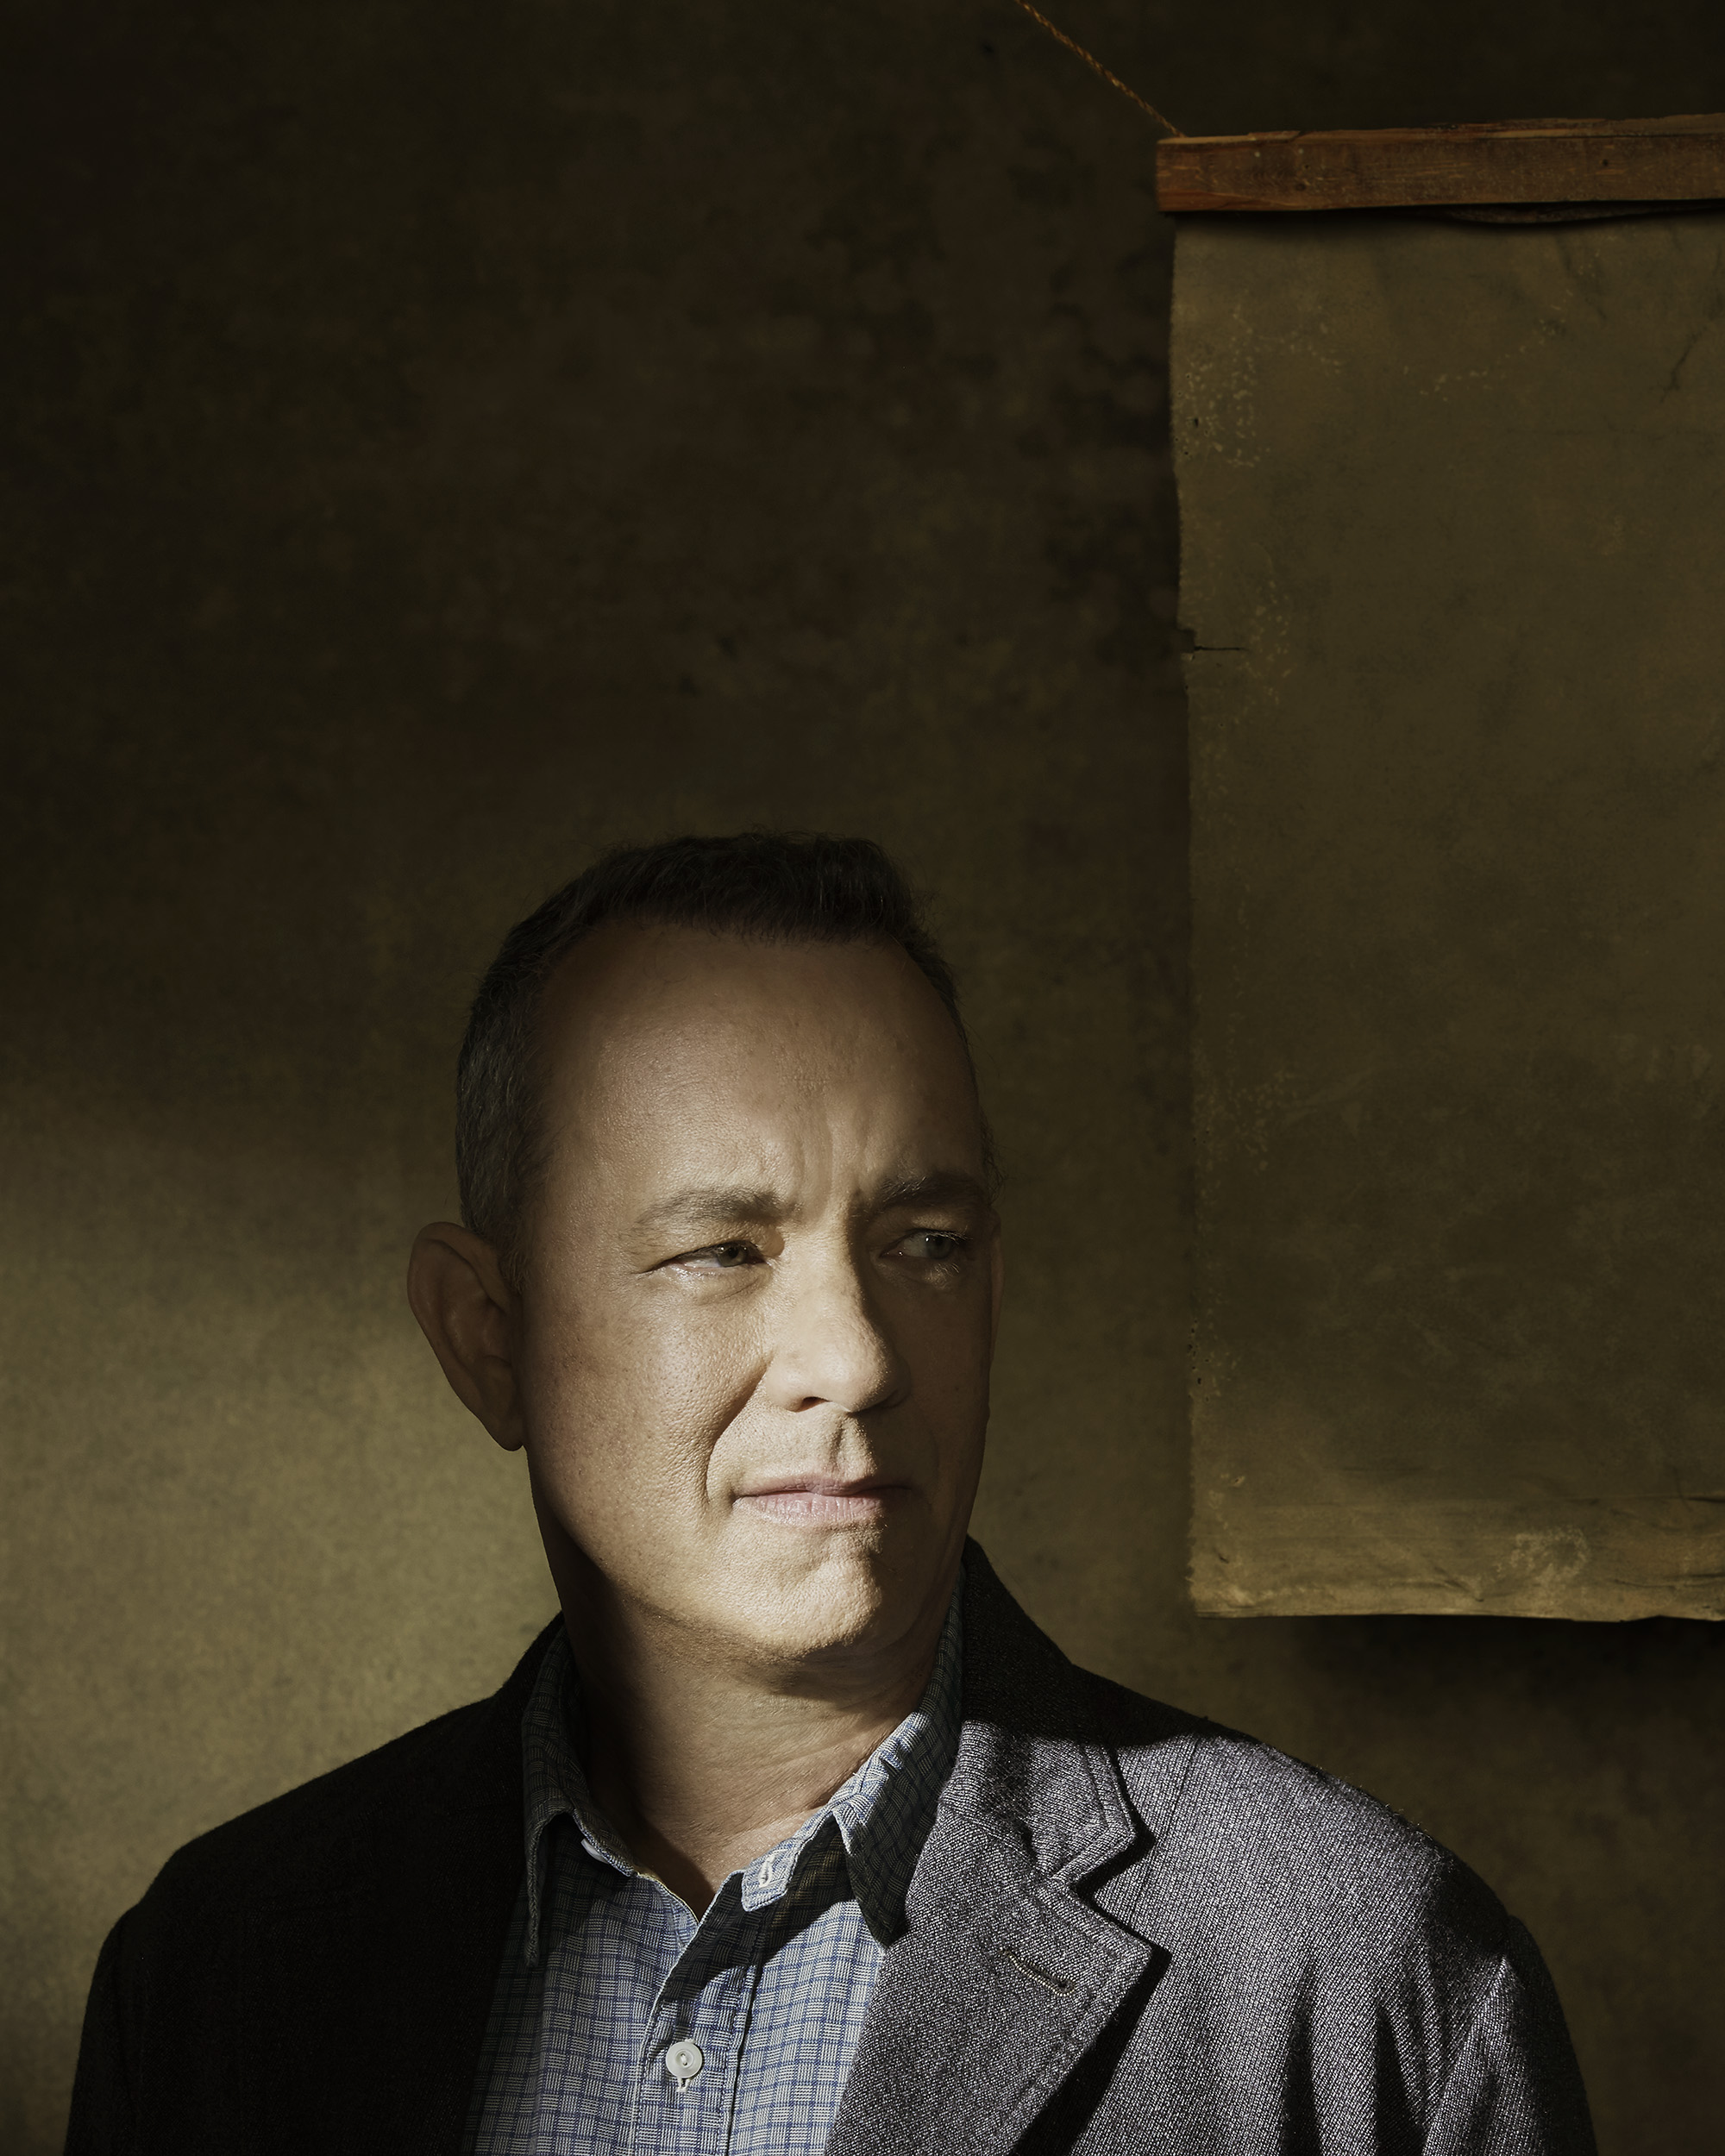 Tom-Hanks-By-Robert-Ascroft-03